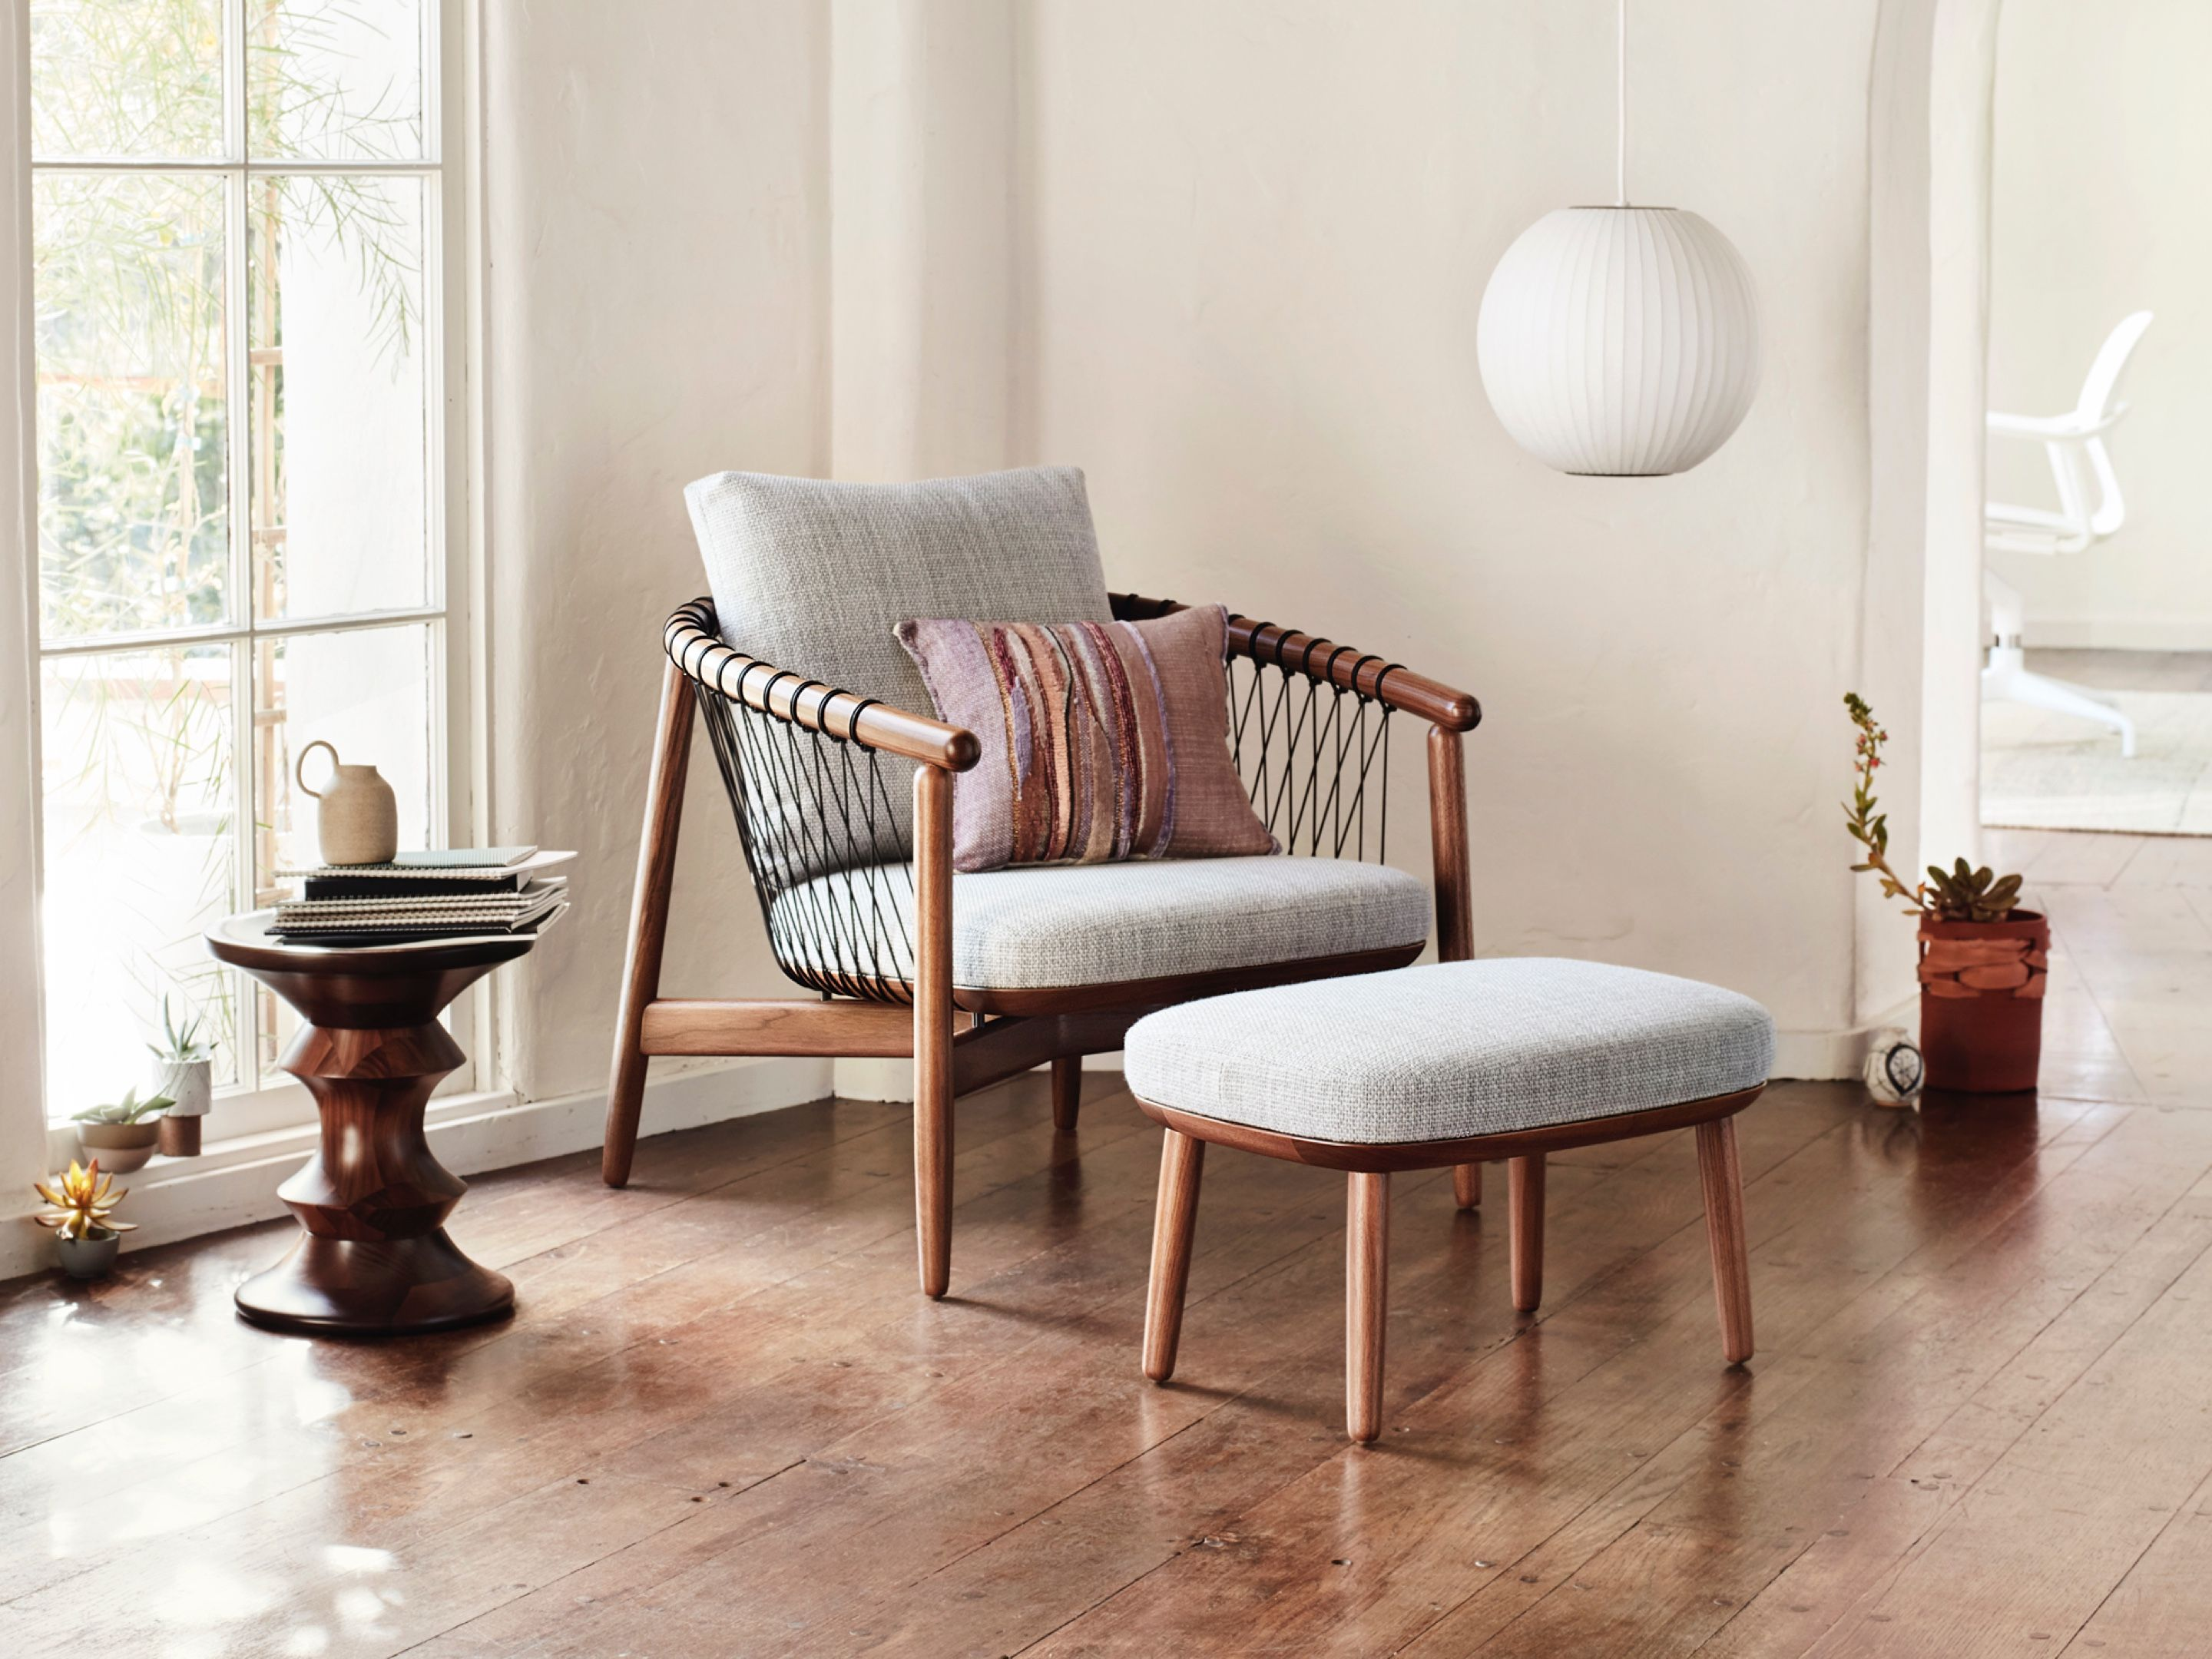 Crosshatch chair leather dining room chairs accent